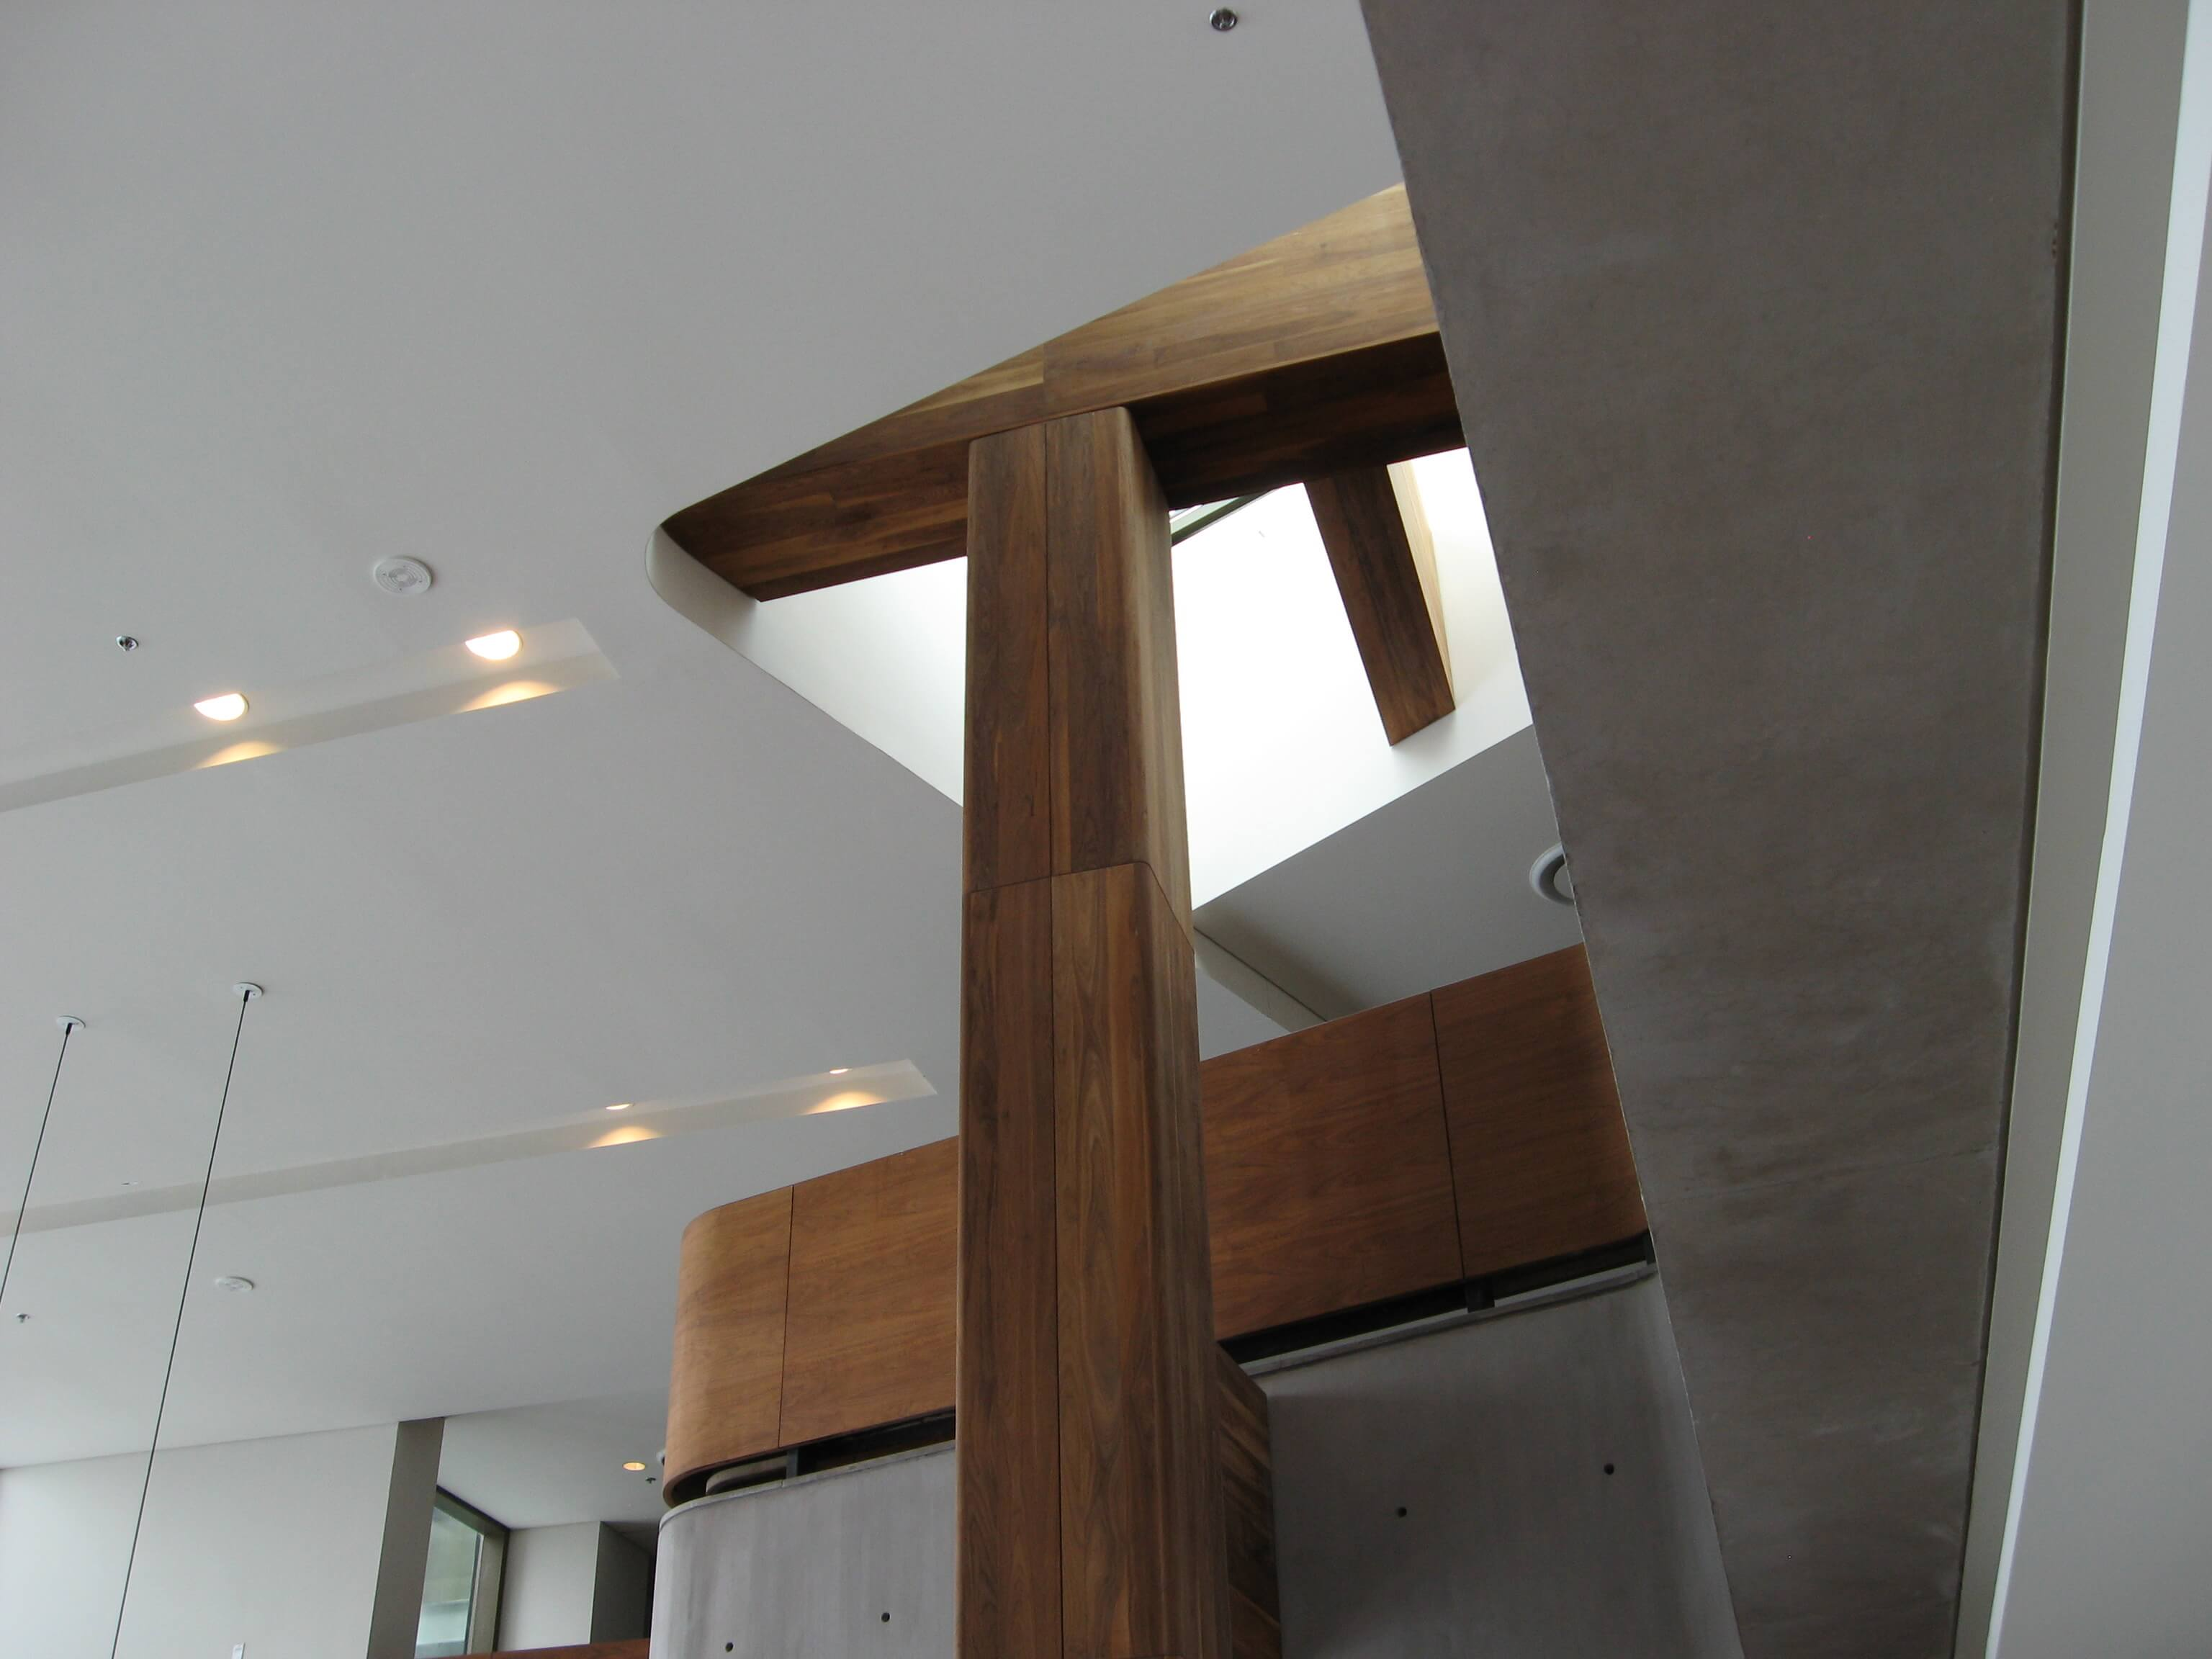 ivey school of business london ontario architectural millwork